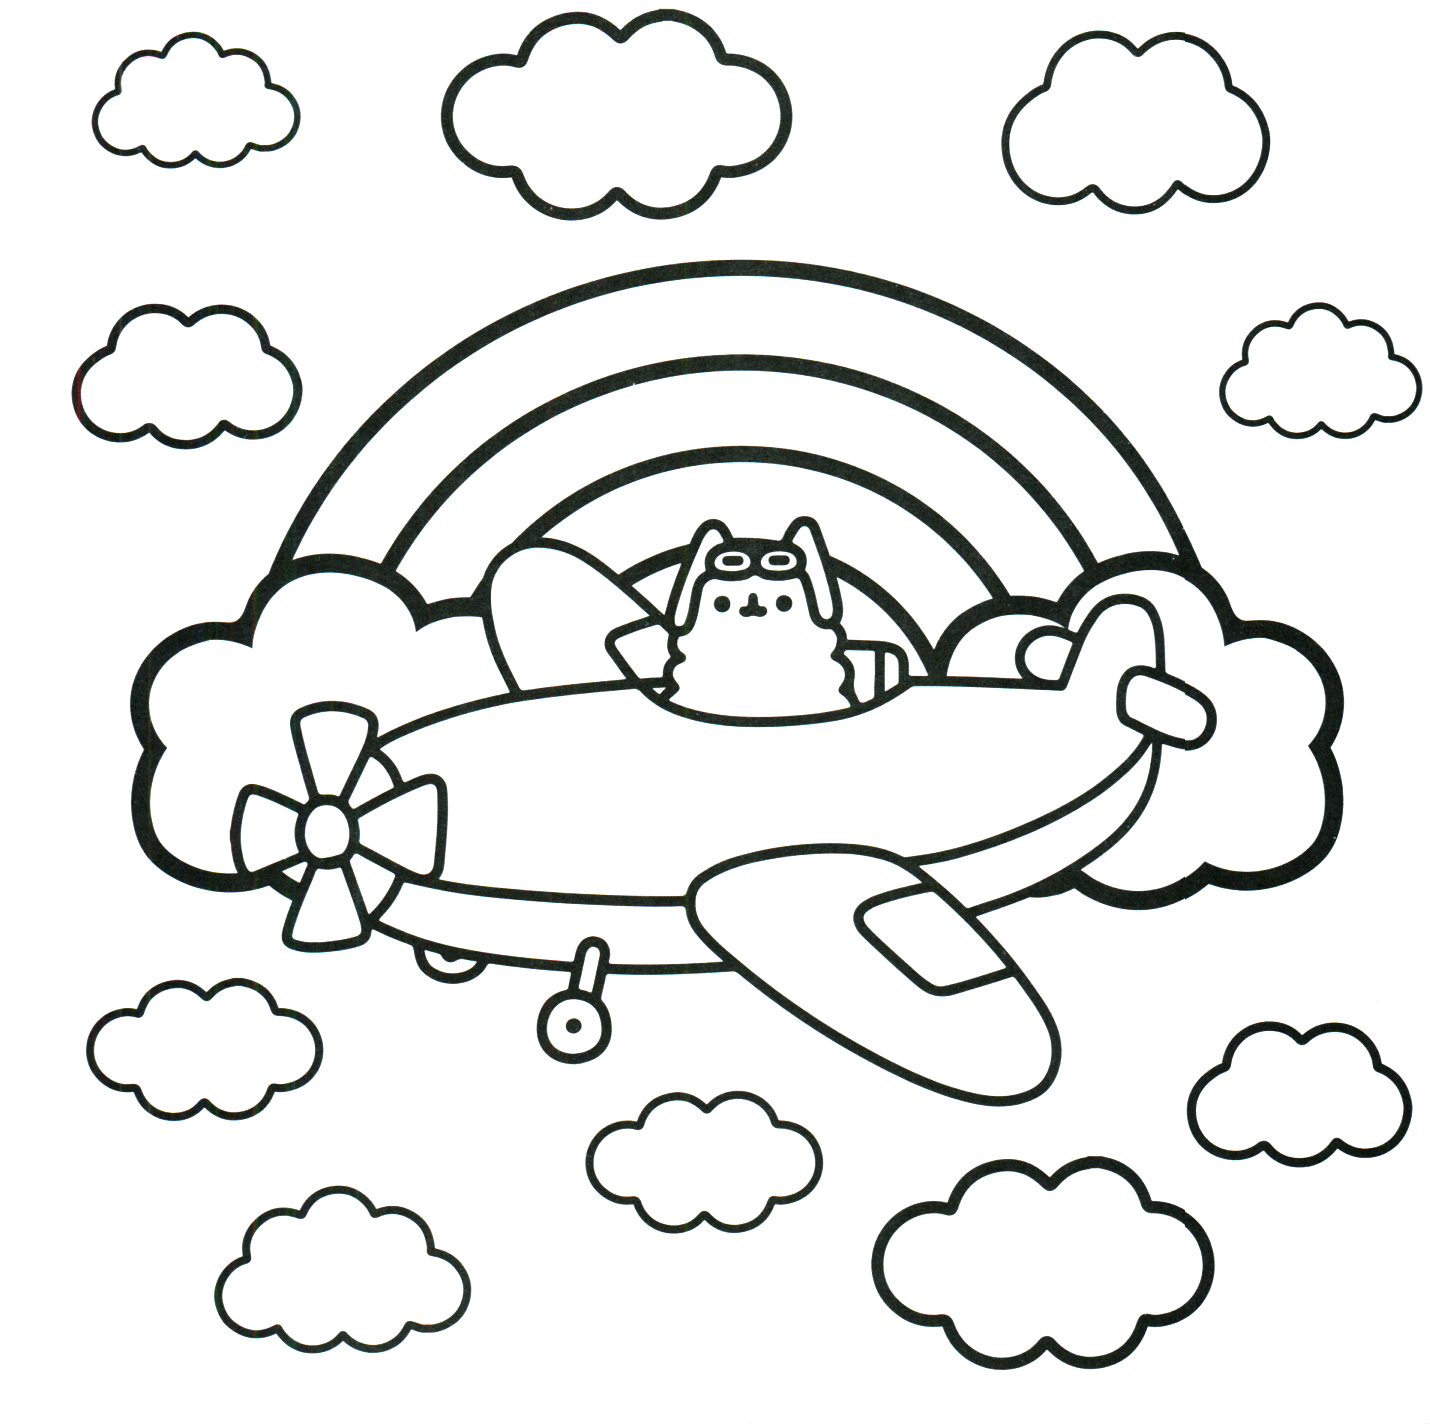 Pusheen coloring pages best coloring pages for kids Coloring book for toddlers